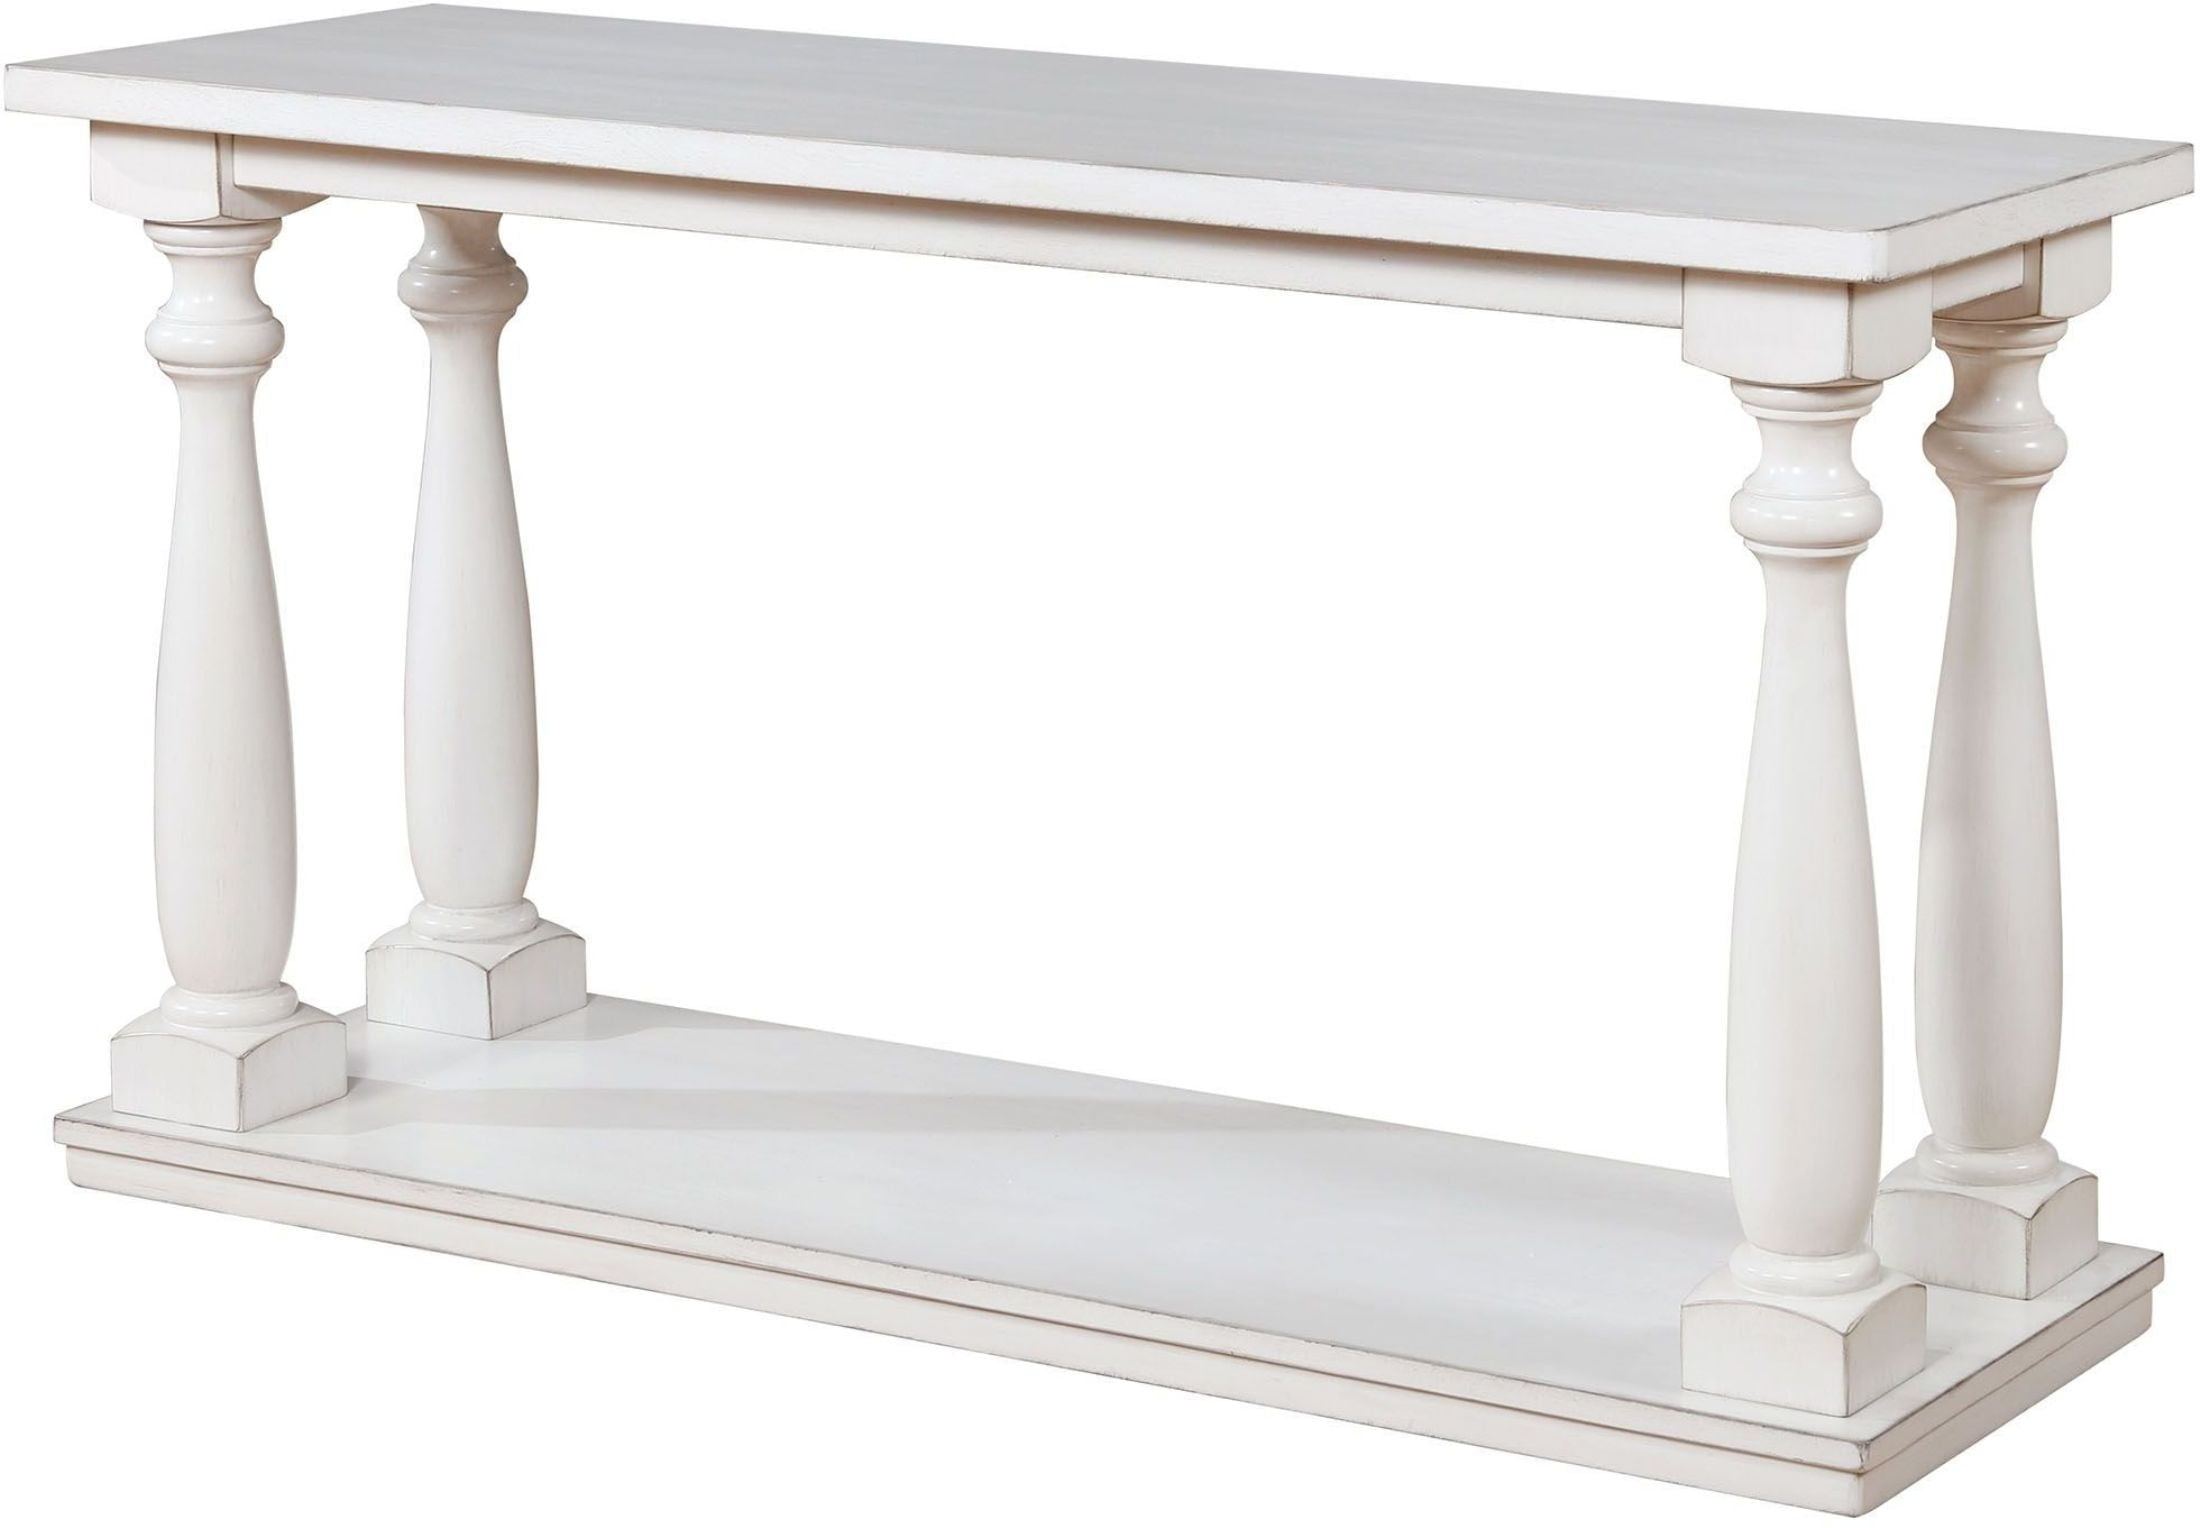 antique white sofa table. Tammie Antique White Sofa Table From Furniture Of America | Coleman  Antique White Sofa Table